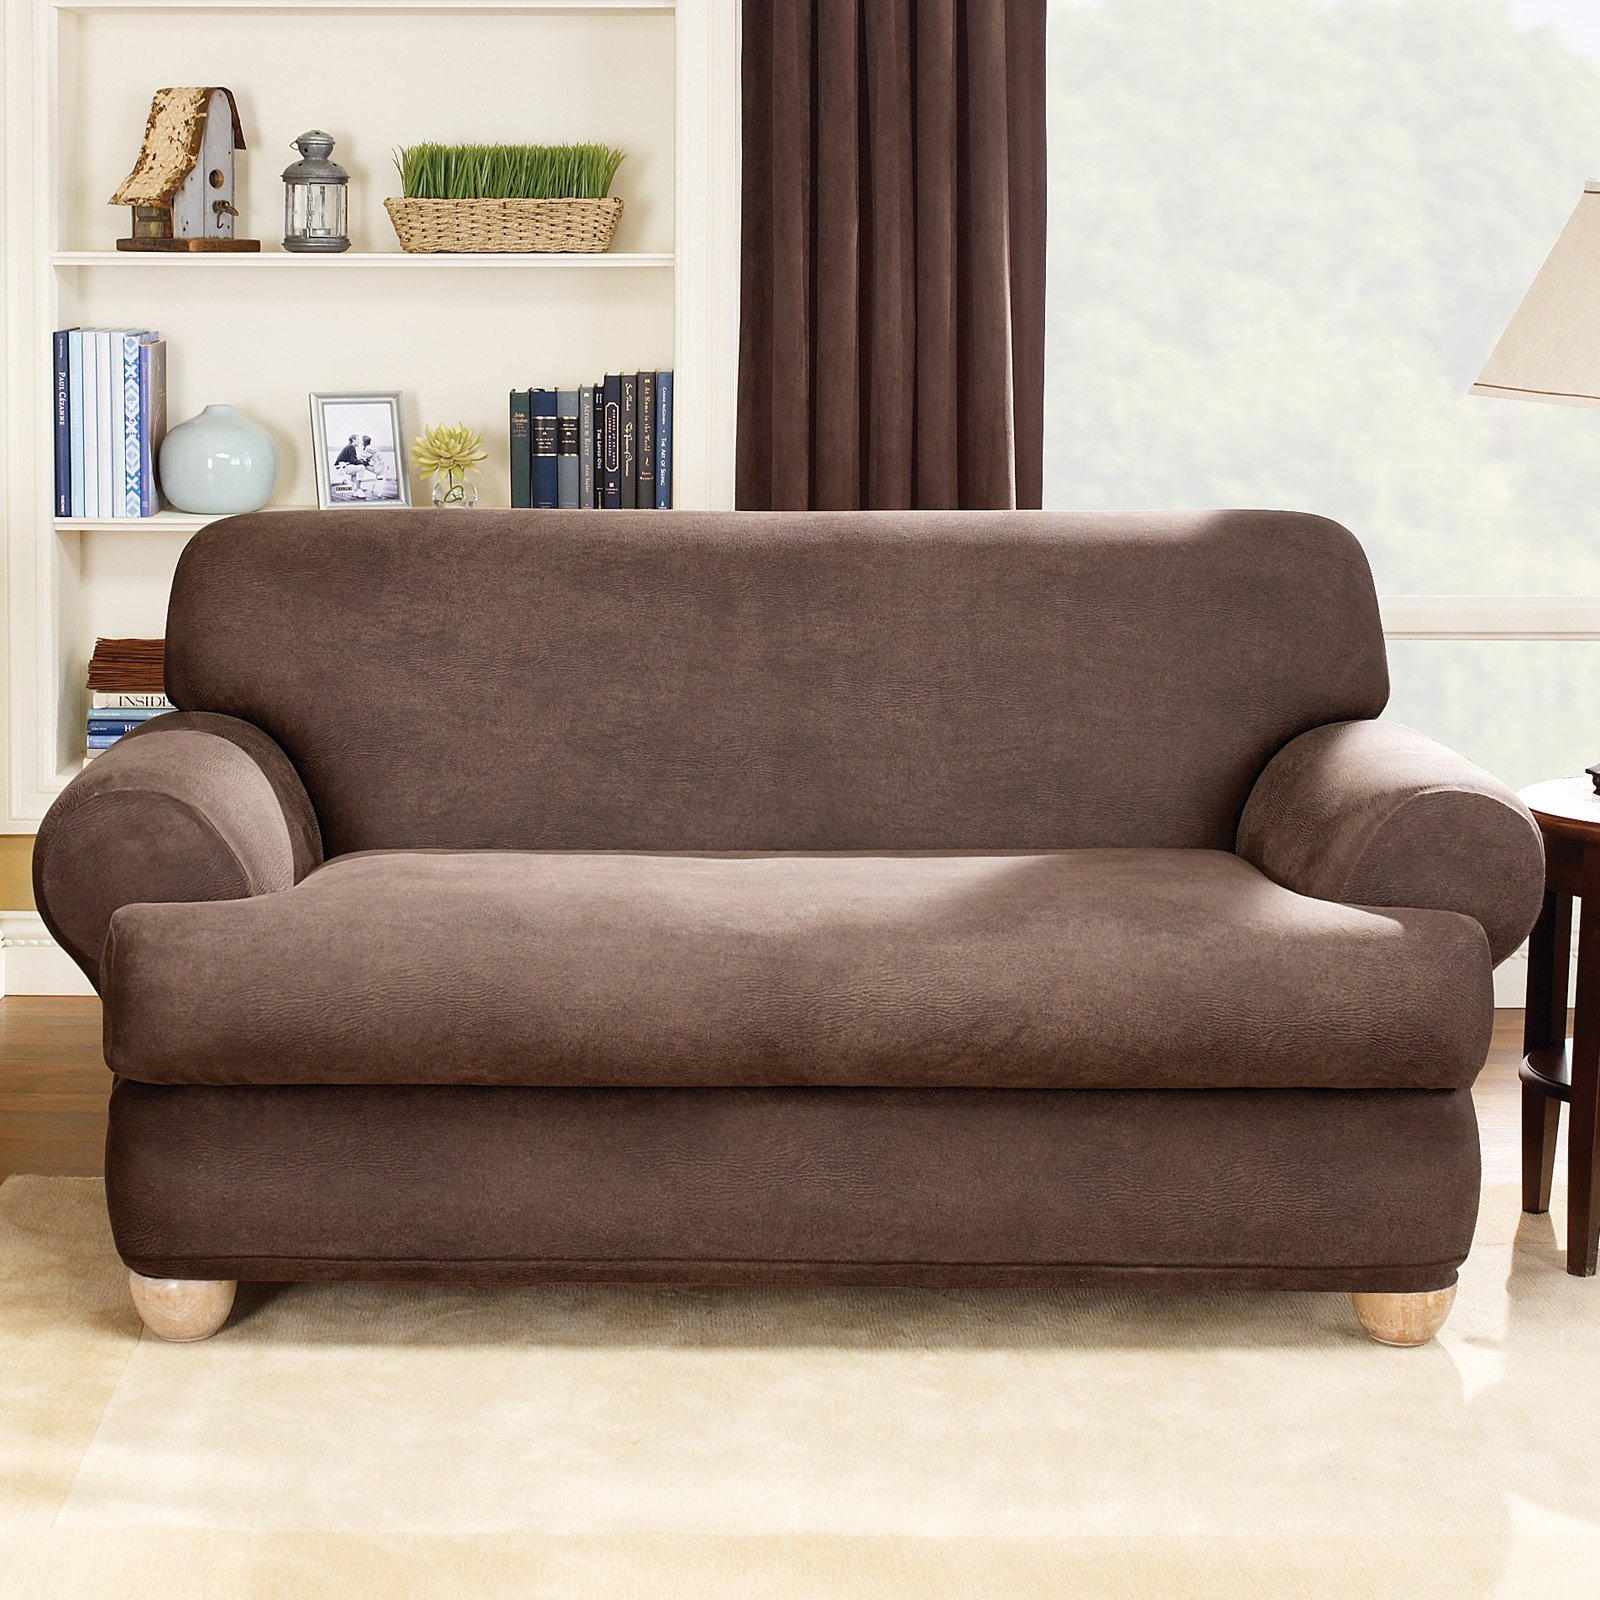 Fitted Slipcovers Couches Sure Fit Stretch Leather 2 Piece T Cushion Sofa Slipcover Brown